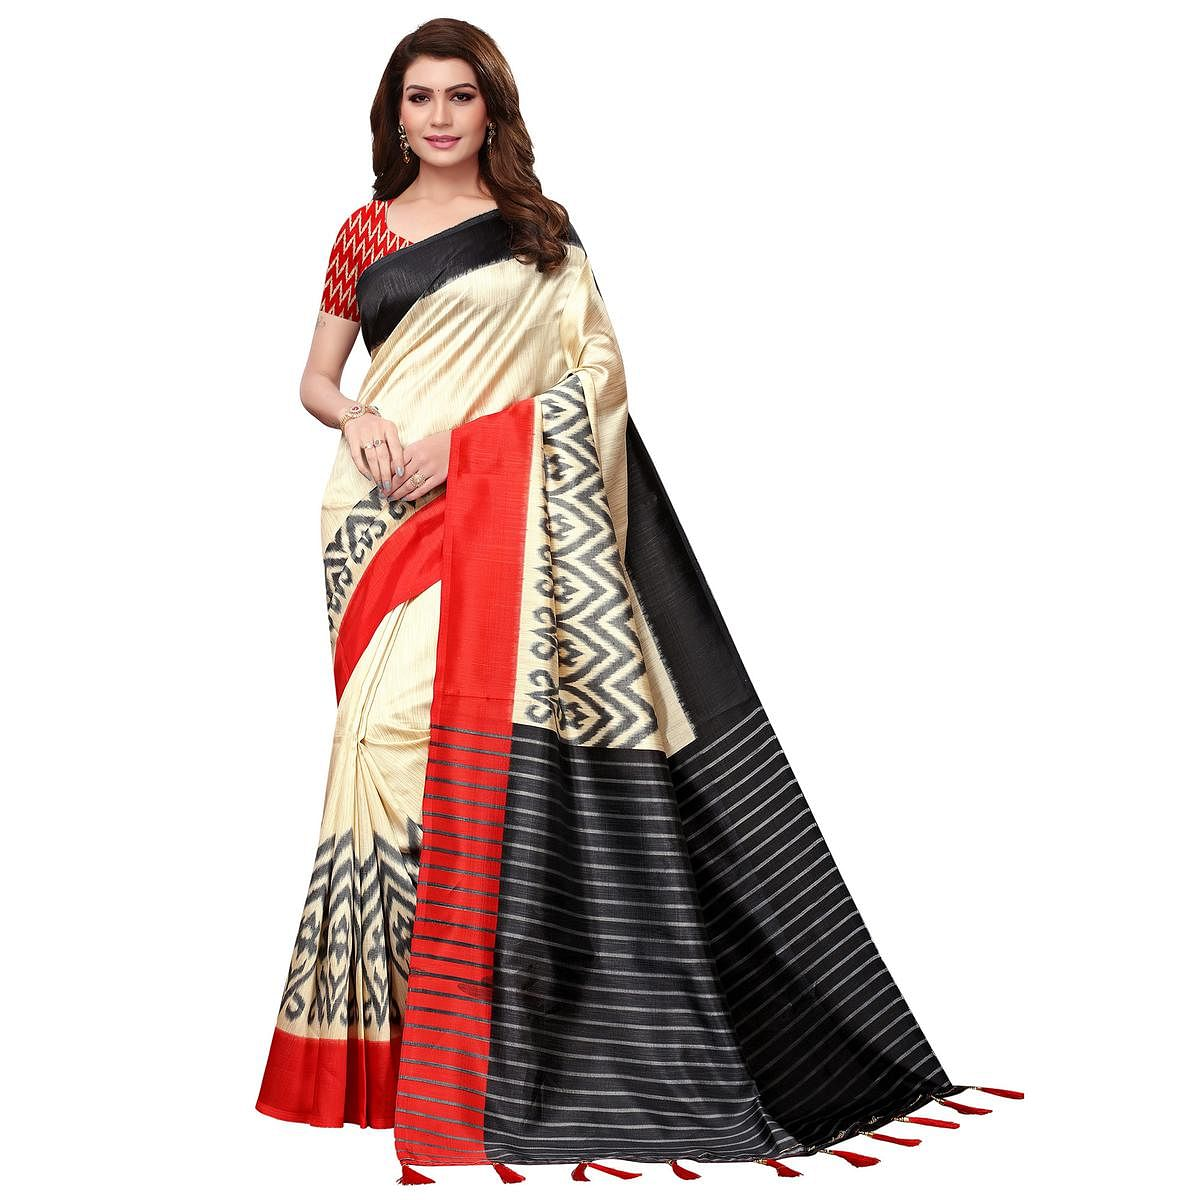 54c9afe8b5 Buy Amazing Cream-Red Colored Festive Wear Mysore Silk Saree With Tassels  For womens online India, Best Prices, Reviews - Peachmode